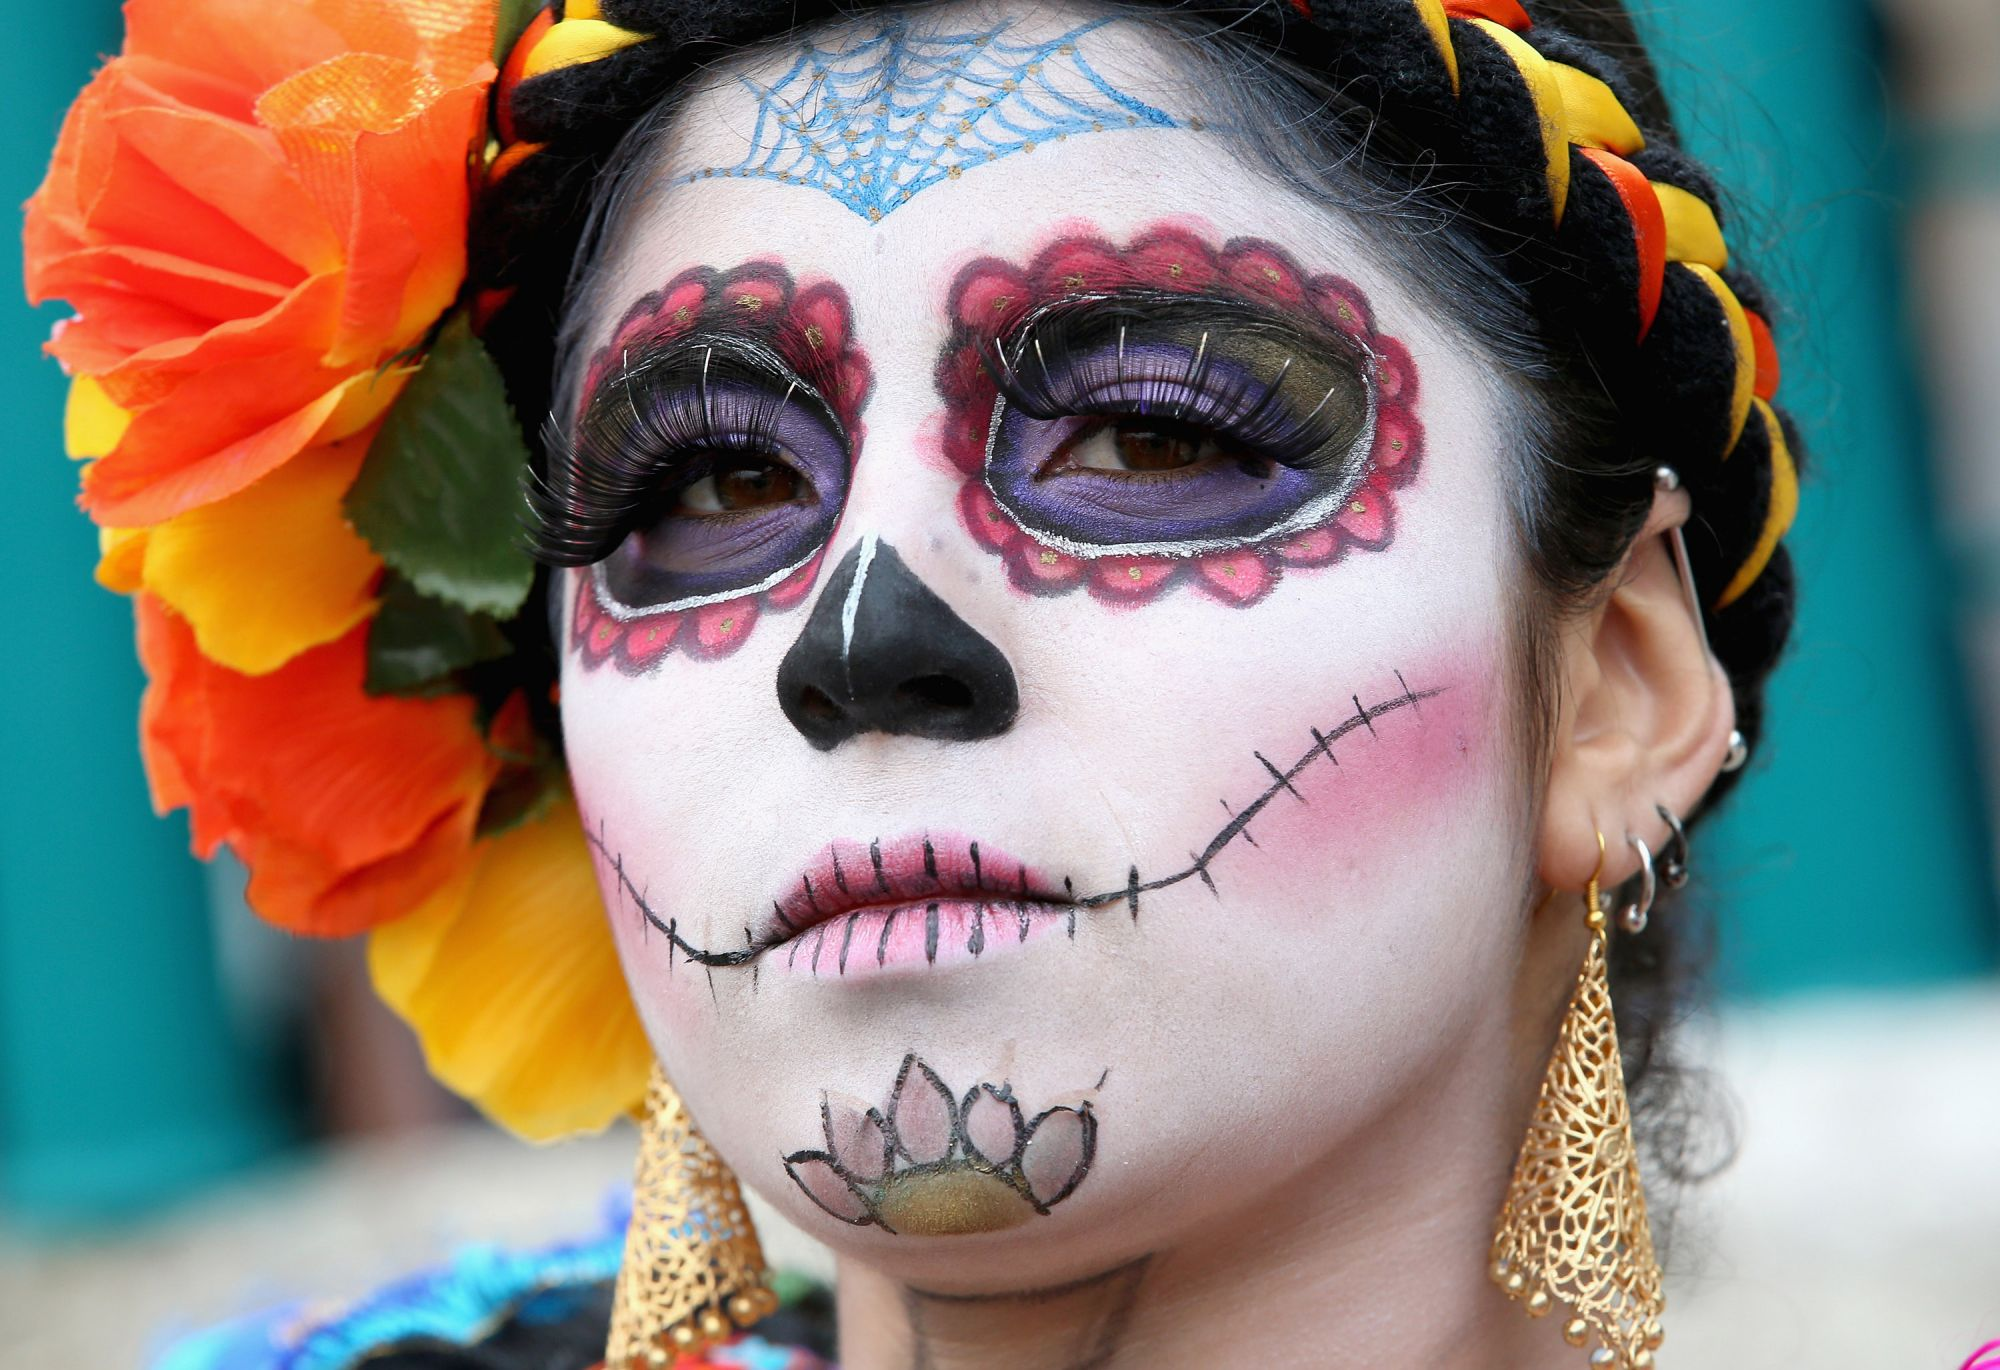 HIDALGO, MEXICO - NOVEMBER 02:  A girl in costume in Real del Monte on the 'Day of the Dead' on November 2, 2014 in Hidalgo,Mexico. The Royal Couple are on the first day of a four day visit to Mexico as part of a Royal tour to Colombia and Mexico.  (Photo by Chris Jackson/Getty Images)